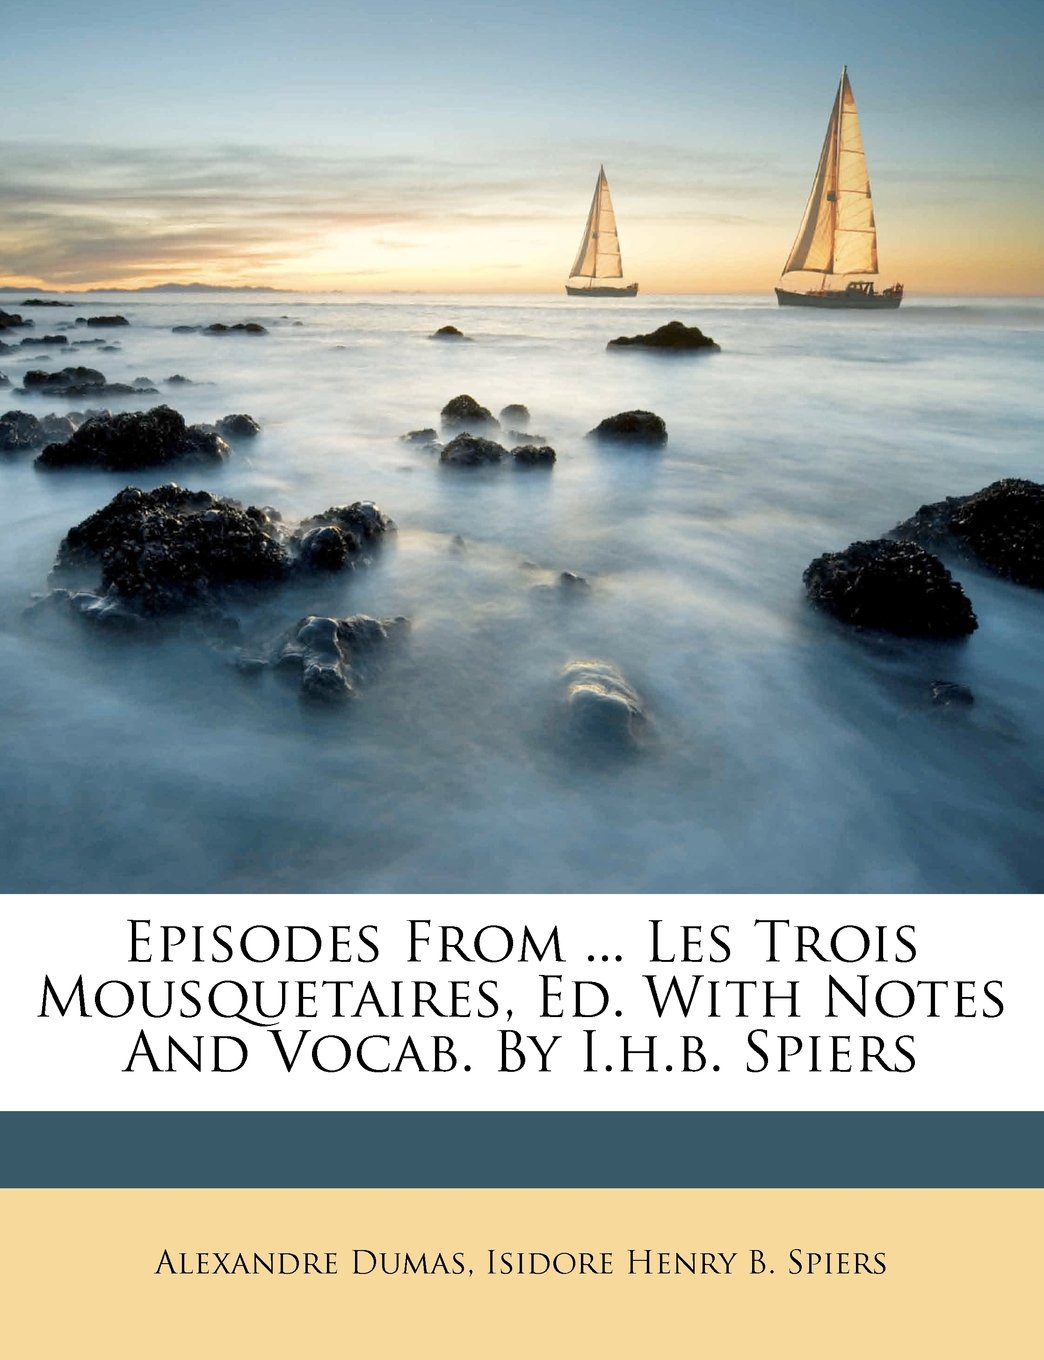 Episodes from ... Les Trois Mousquetaires, Ed. with Notes and Vocab. by I.H.B. Spiers (French Edition) PDF